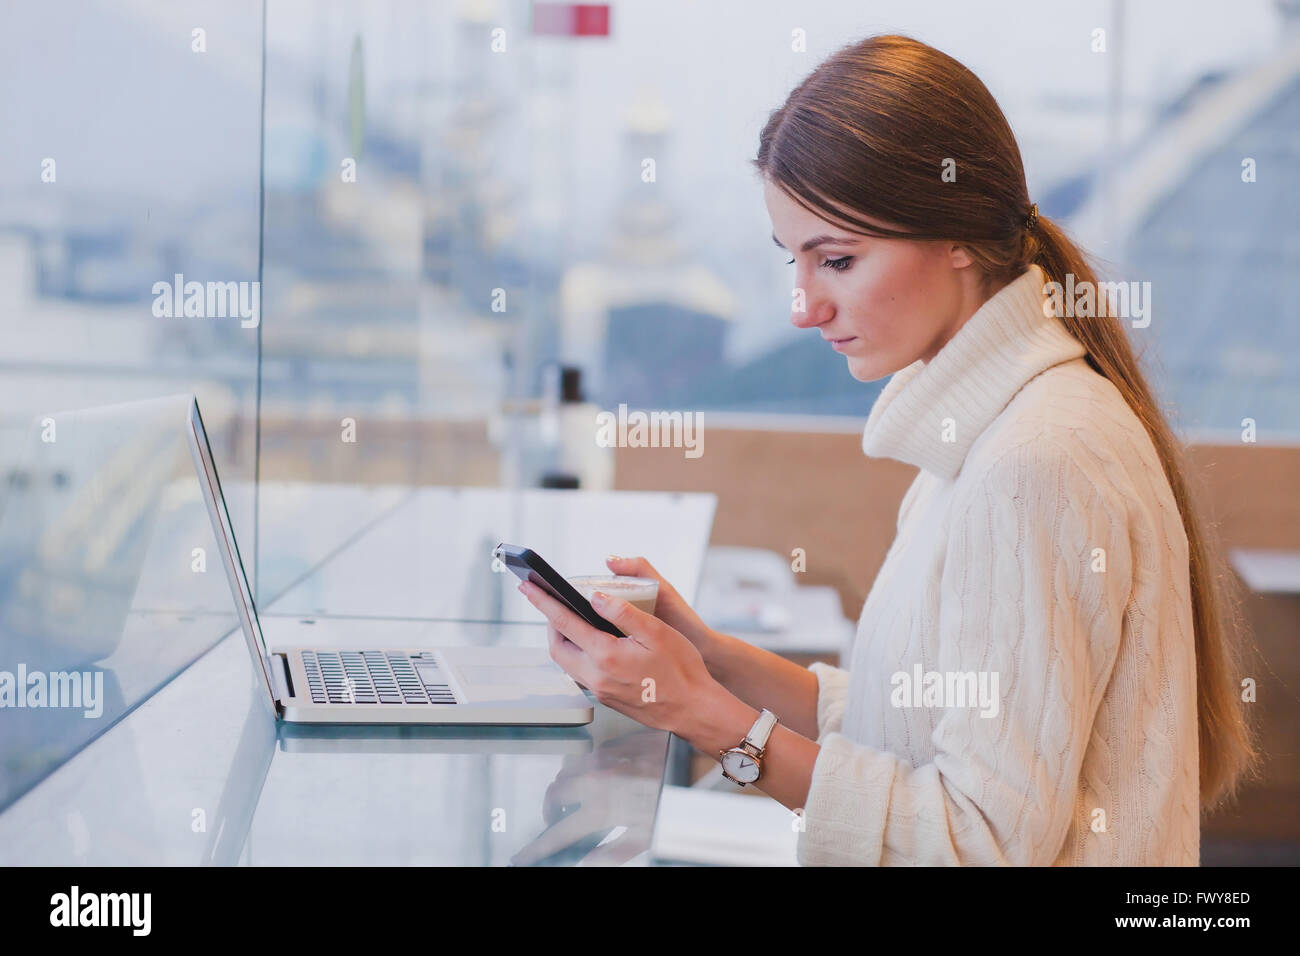 woman using smart phone in modern cafe inerior, mobile application, checking email - Stock Image